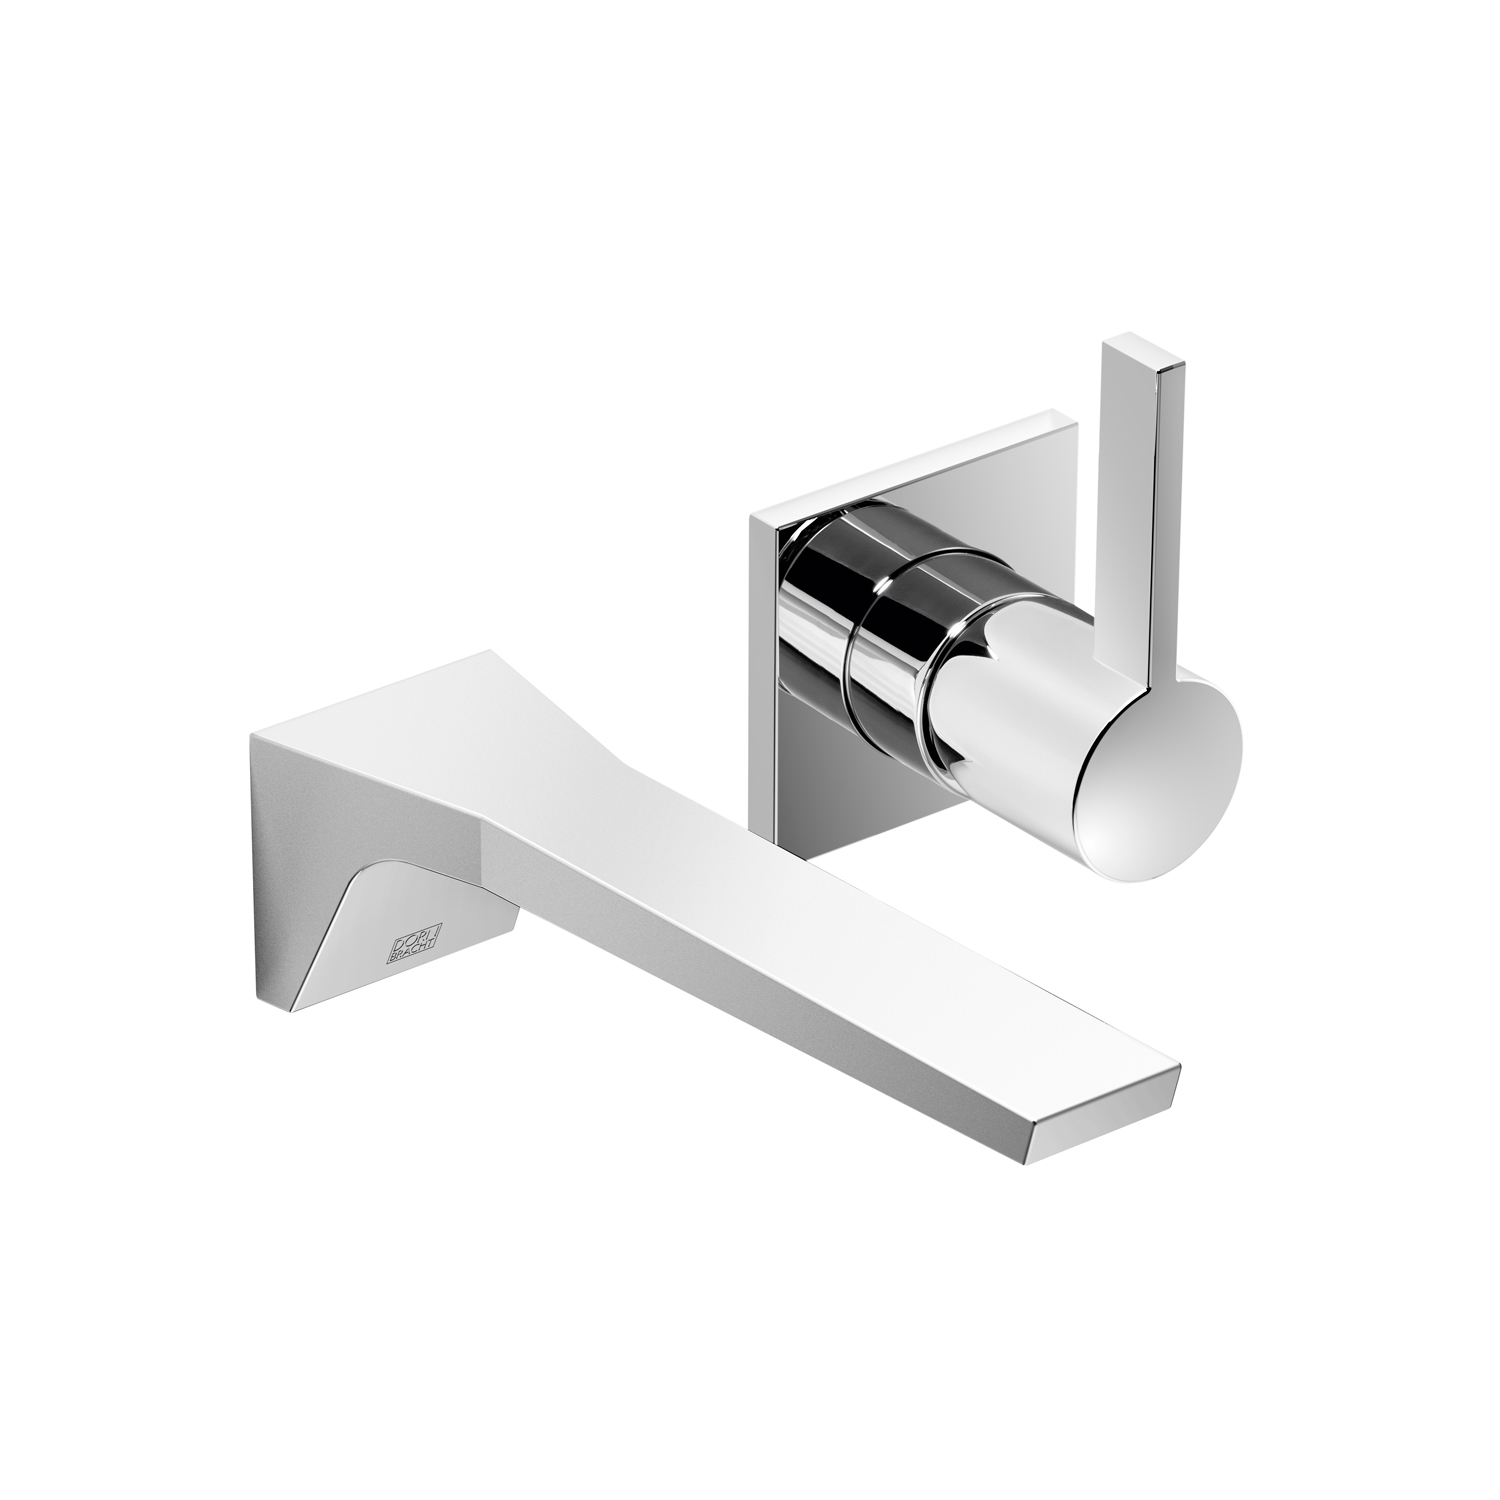 Dornbracht 36812705-00 CL.1 Wall-Mounted Single-Lever Mixer without Drain - Polished Chrome